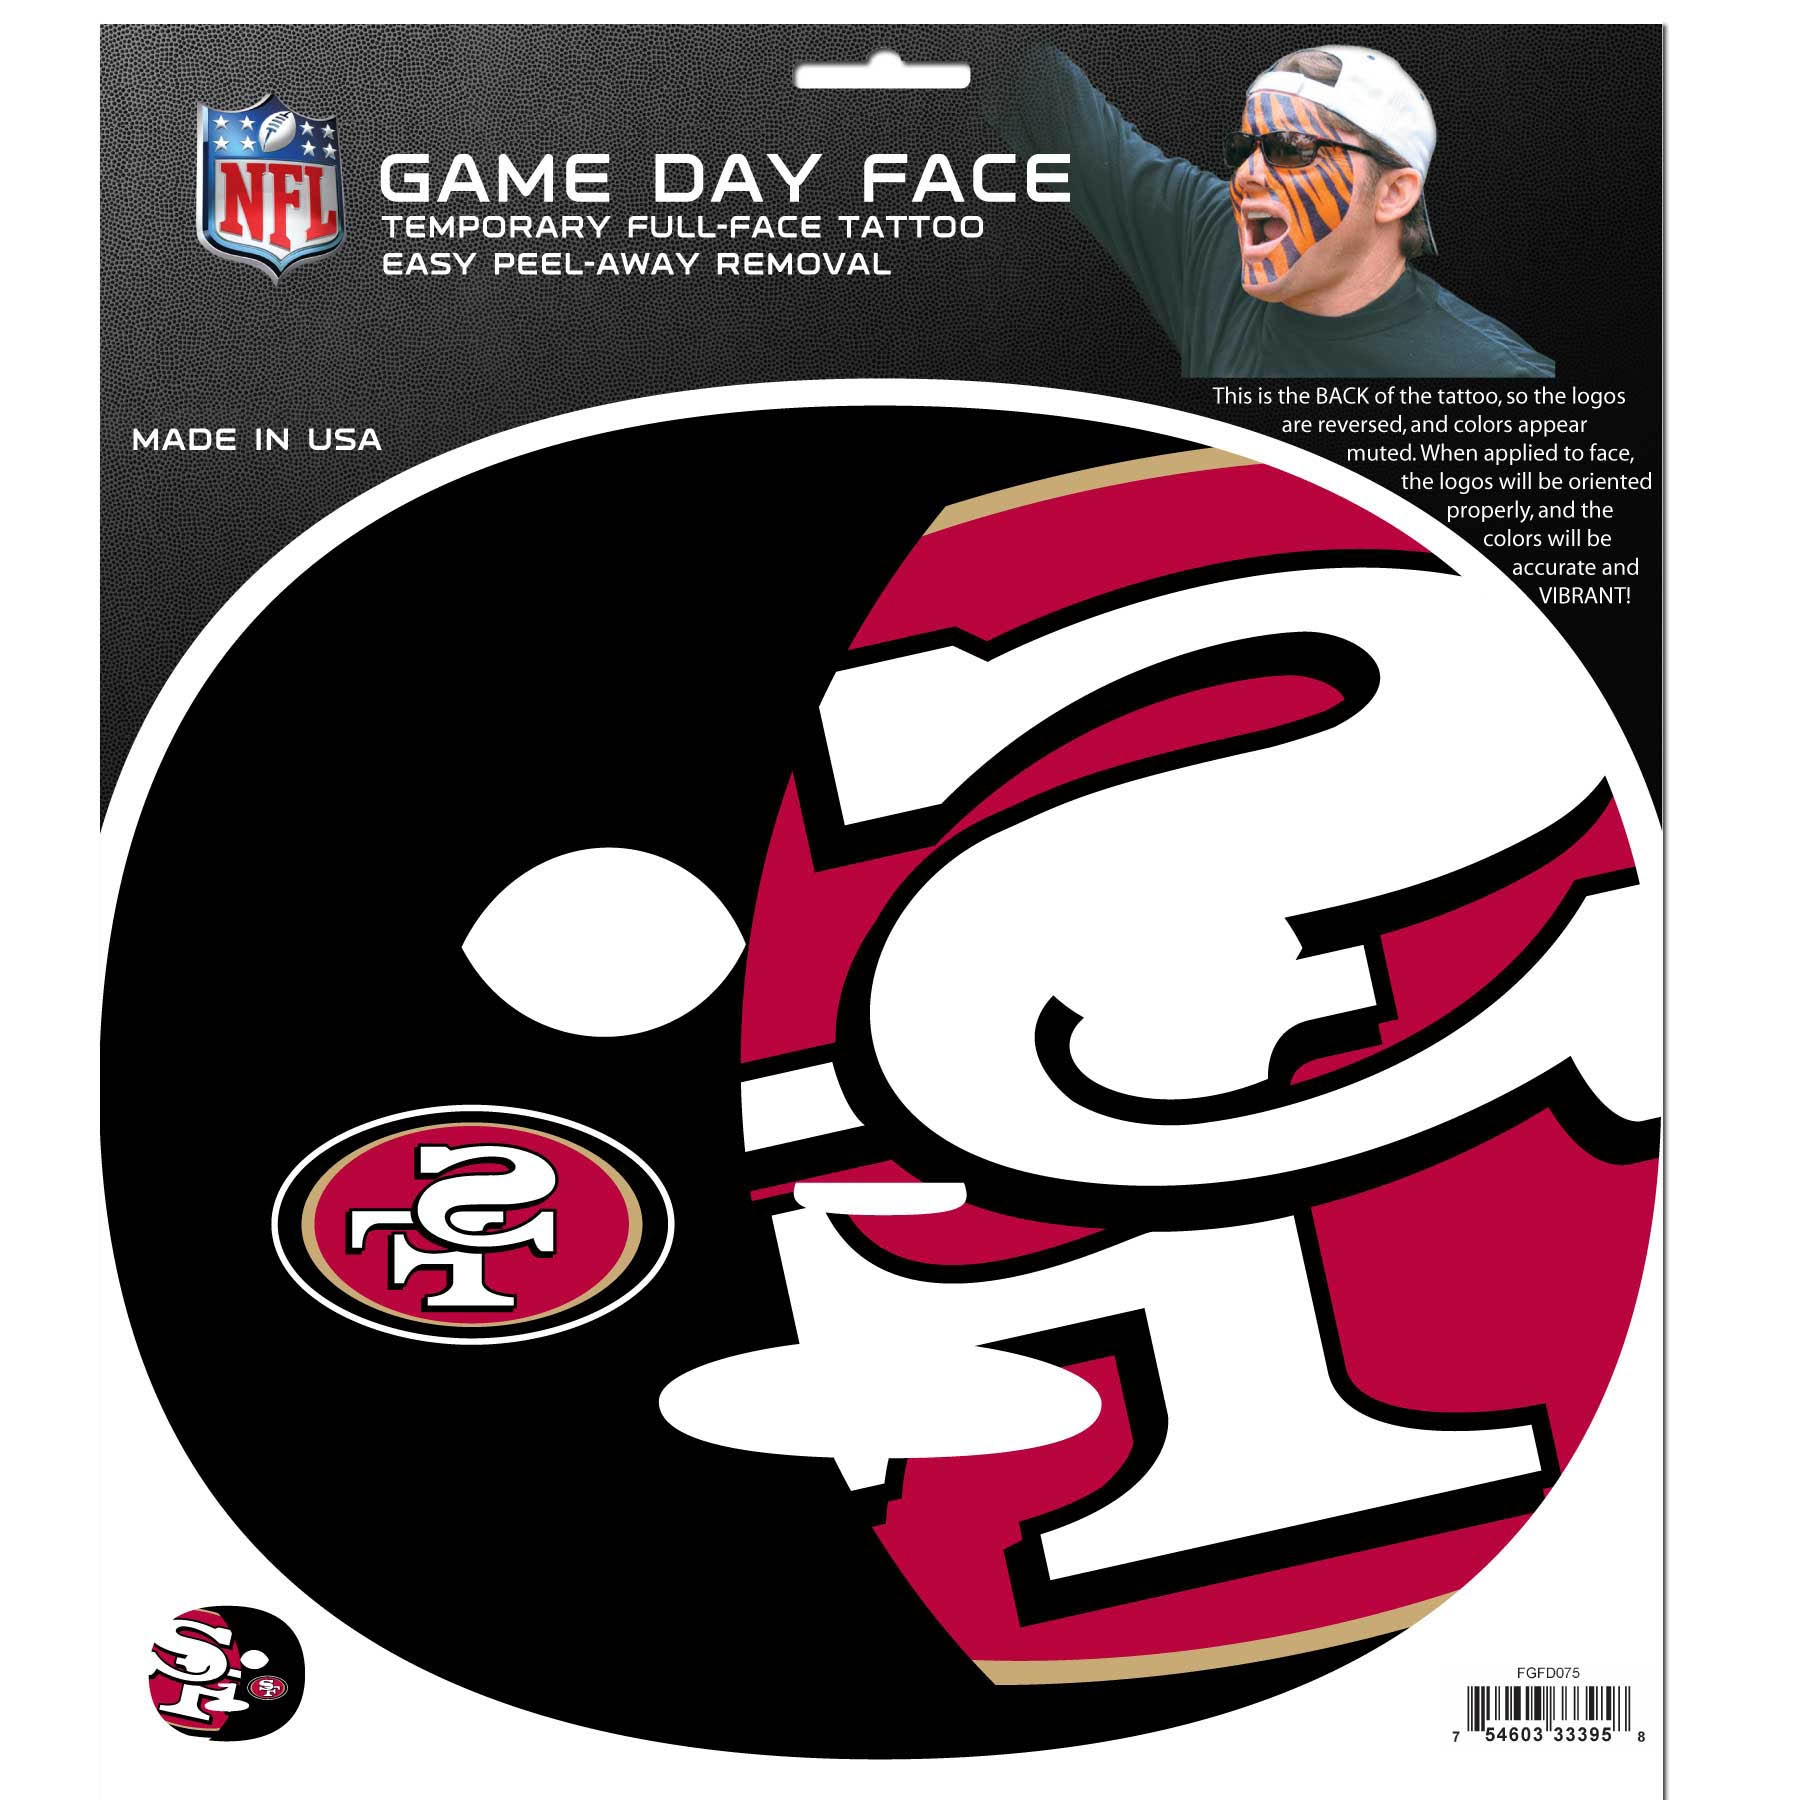 NFL Gameday Face Temporary Tattoo - Choose Your Team